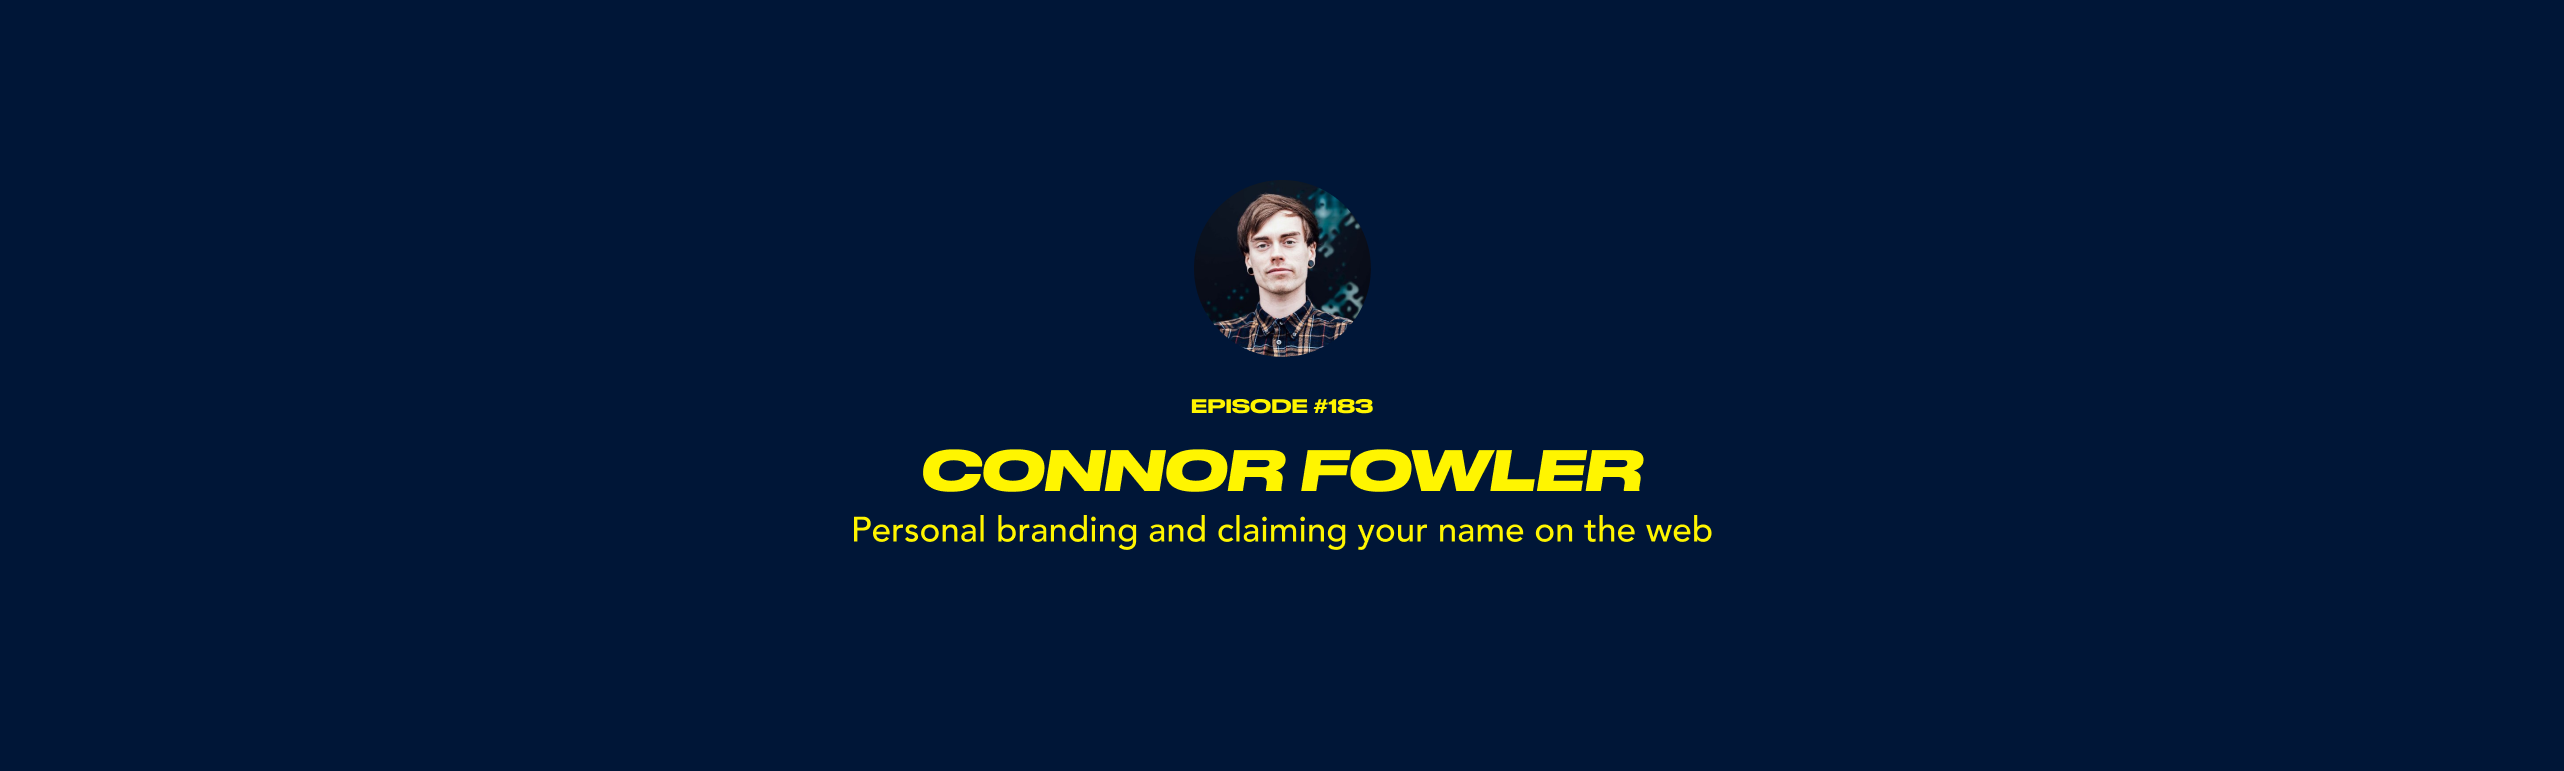 Connor Fowler - Personal branding and claiming your name on the web